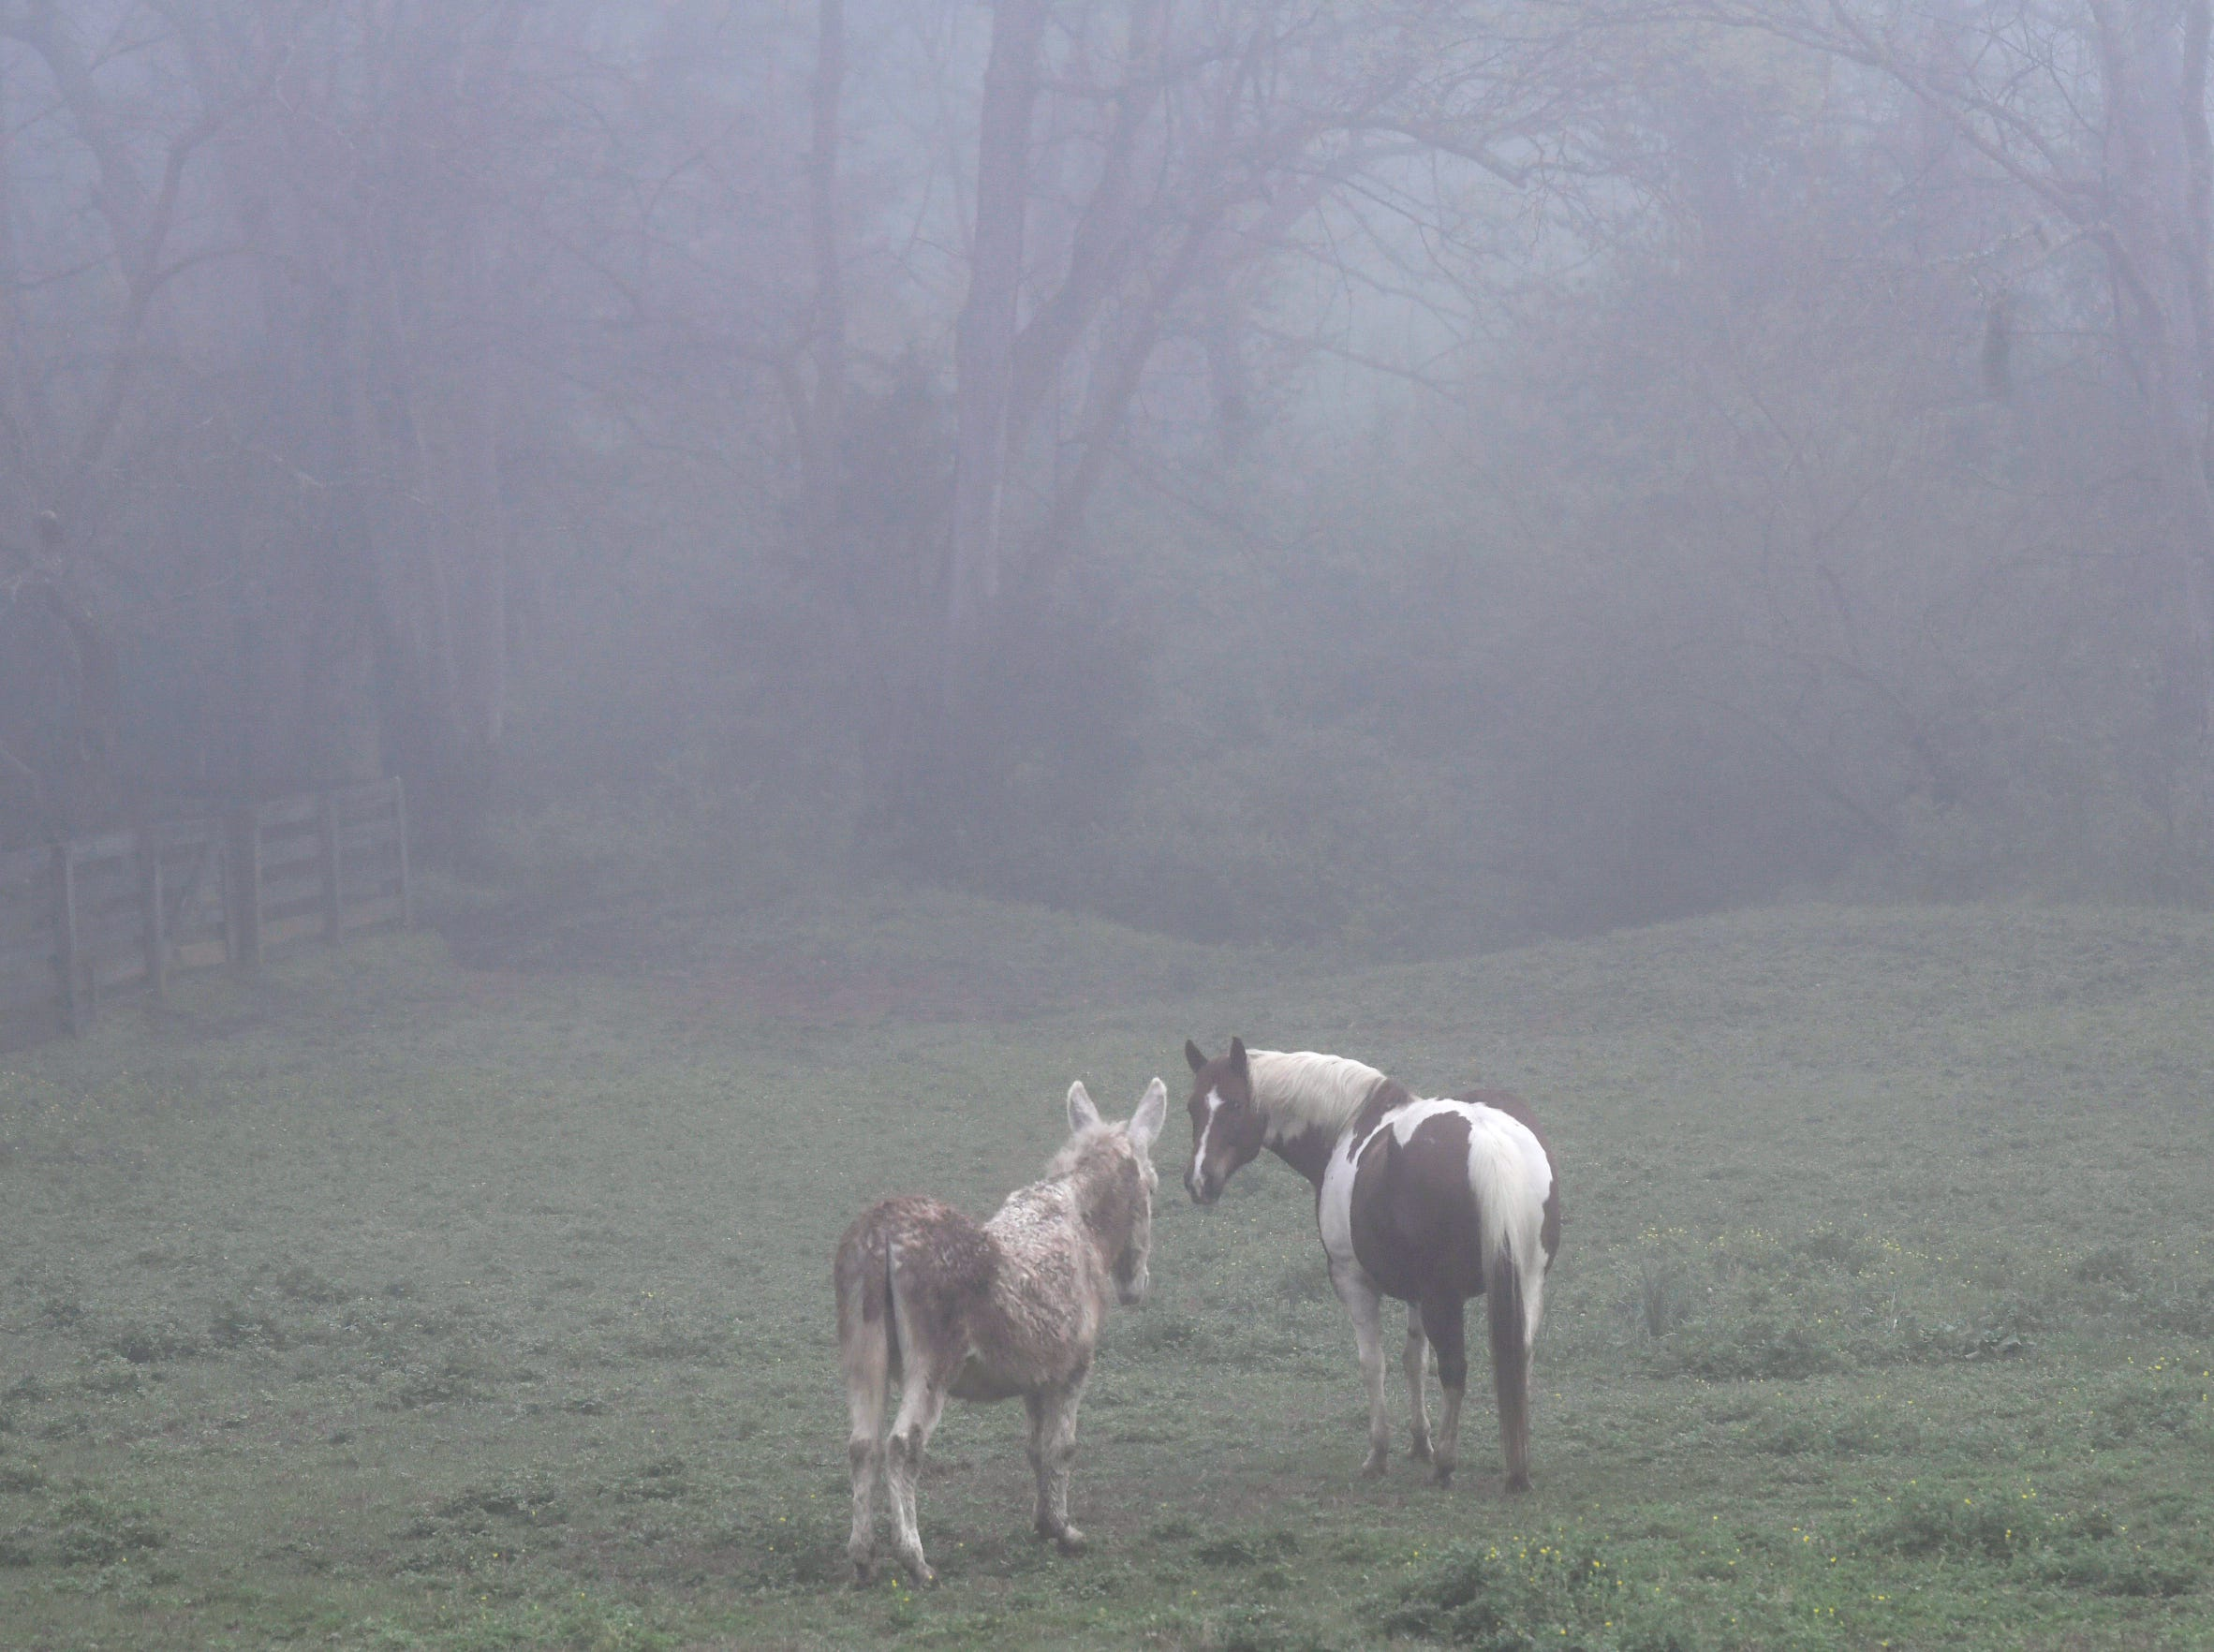 A mule and a horse gaze in a field on Murray Lane in Brentwood on April 8, 2019. A dense fog advisory was issued for Middle Tennessee on Tuesday morning.